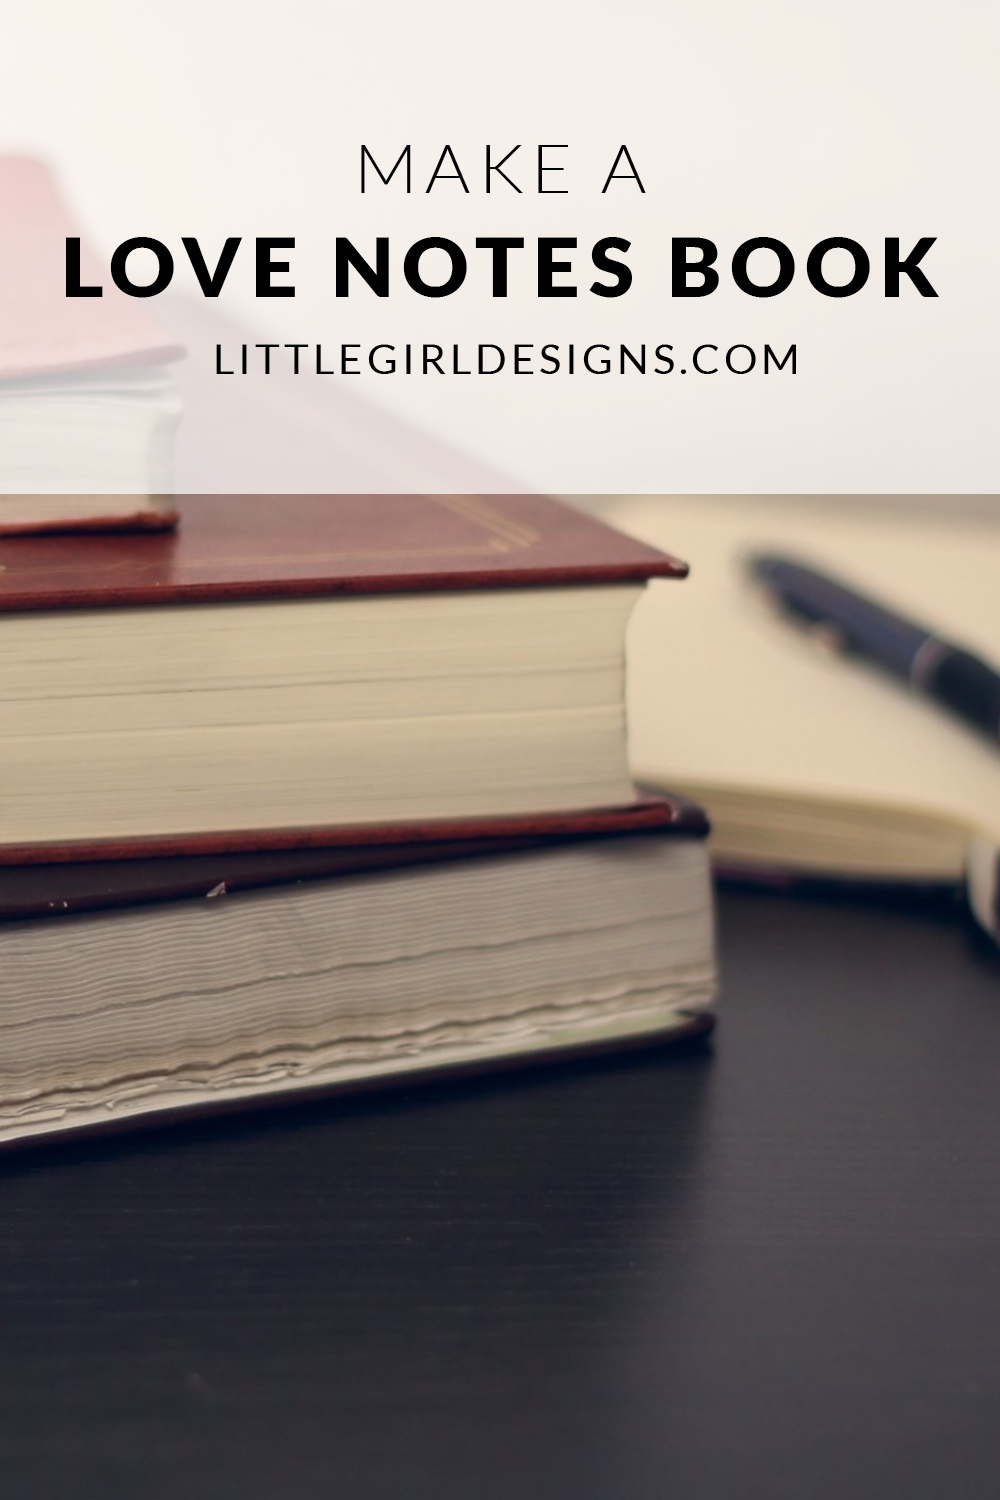 How to Make a Love Notes Book - the perfect gift for a wedding, anniversary, Valentine's Day, or a birthday. I'll show you how to make one @ littlegirldesigns.com